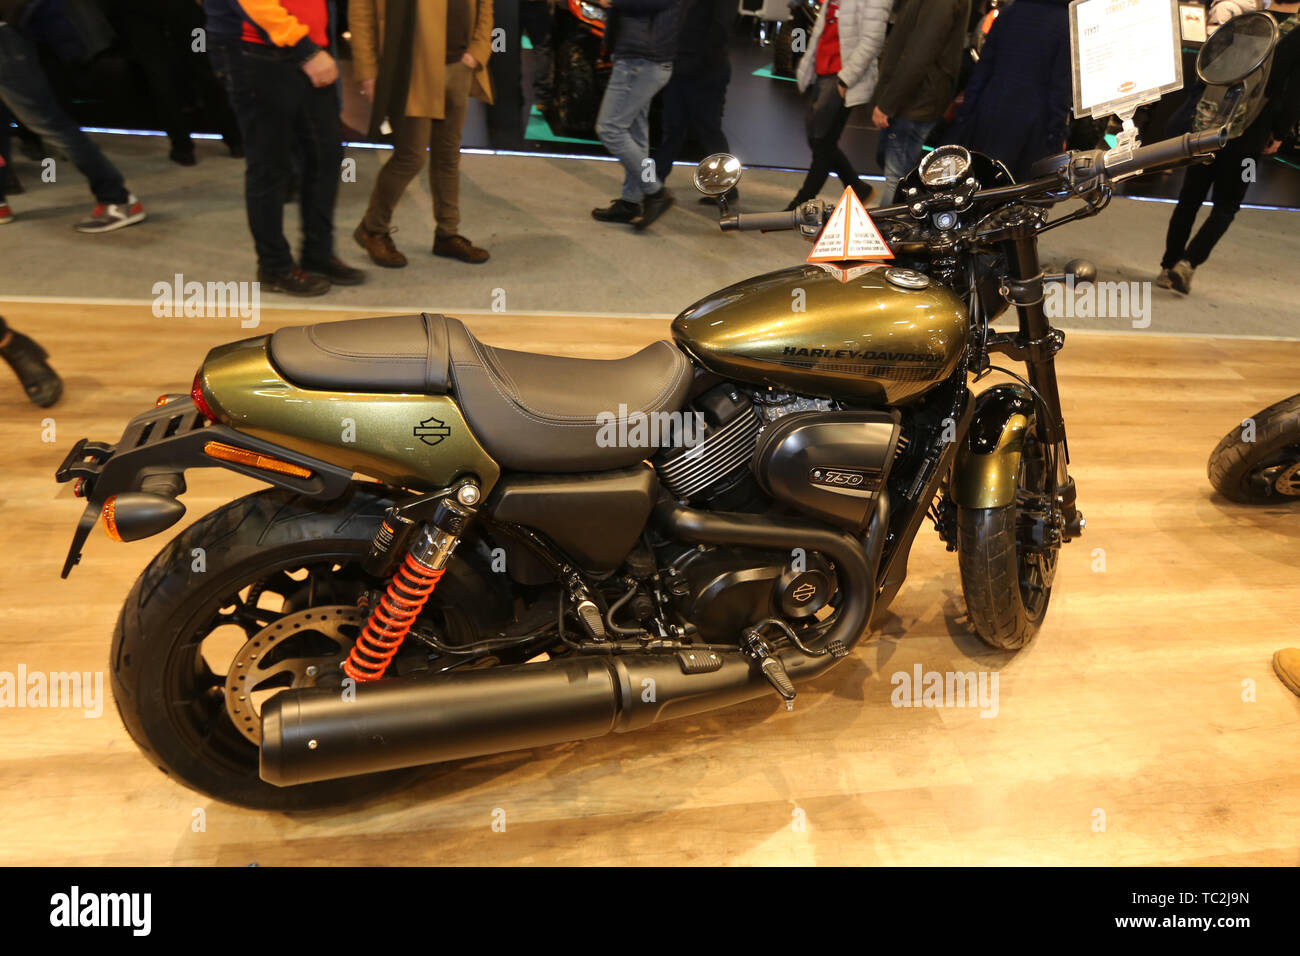 ISTANBUL, TURKEY - FEBRUARY 23, 2019: Harley-Davidson Street 750 on display at Motobike Istanbul in Istanbul Exhibition Center - Stock Image